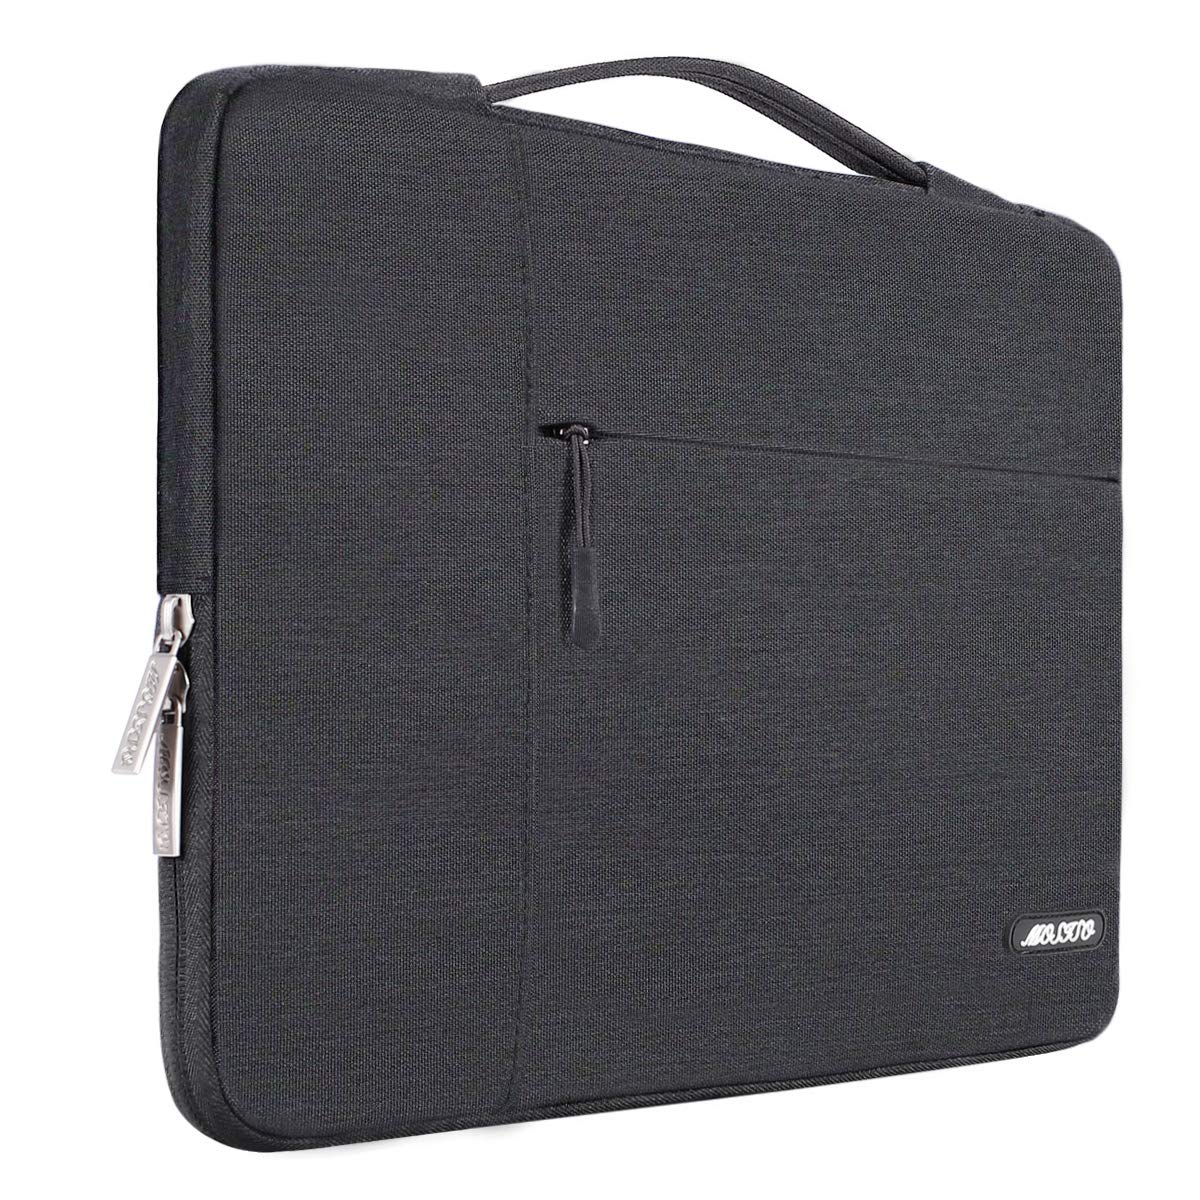 MOSISO Laptop Briefcase Handbag Compatible 13-13.3 Inch MacBook Air, MacBook Pro, Notebook Computer, Polyester Multifunctional Carrying Sleeve Case Cover Bag, Space Gray